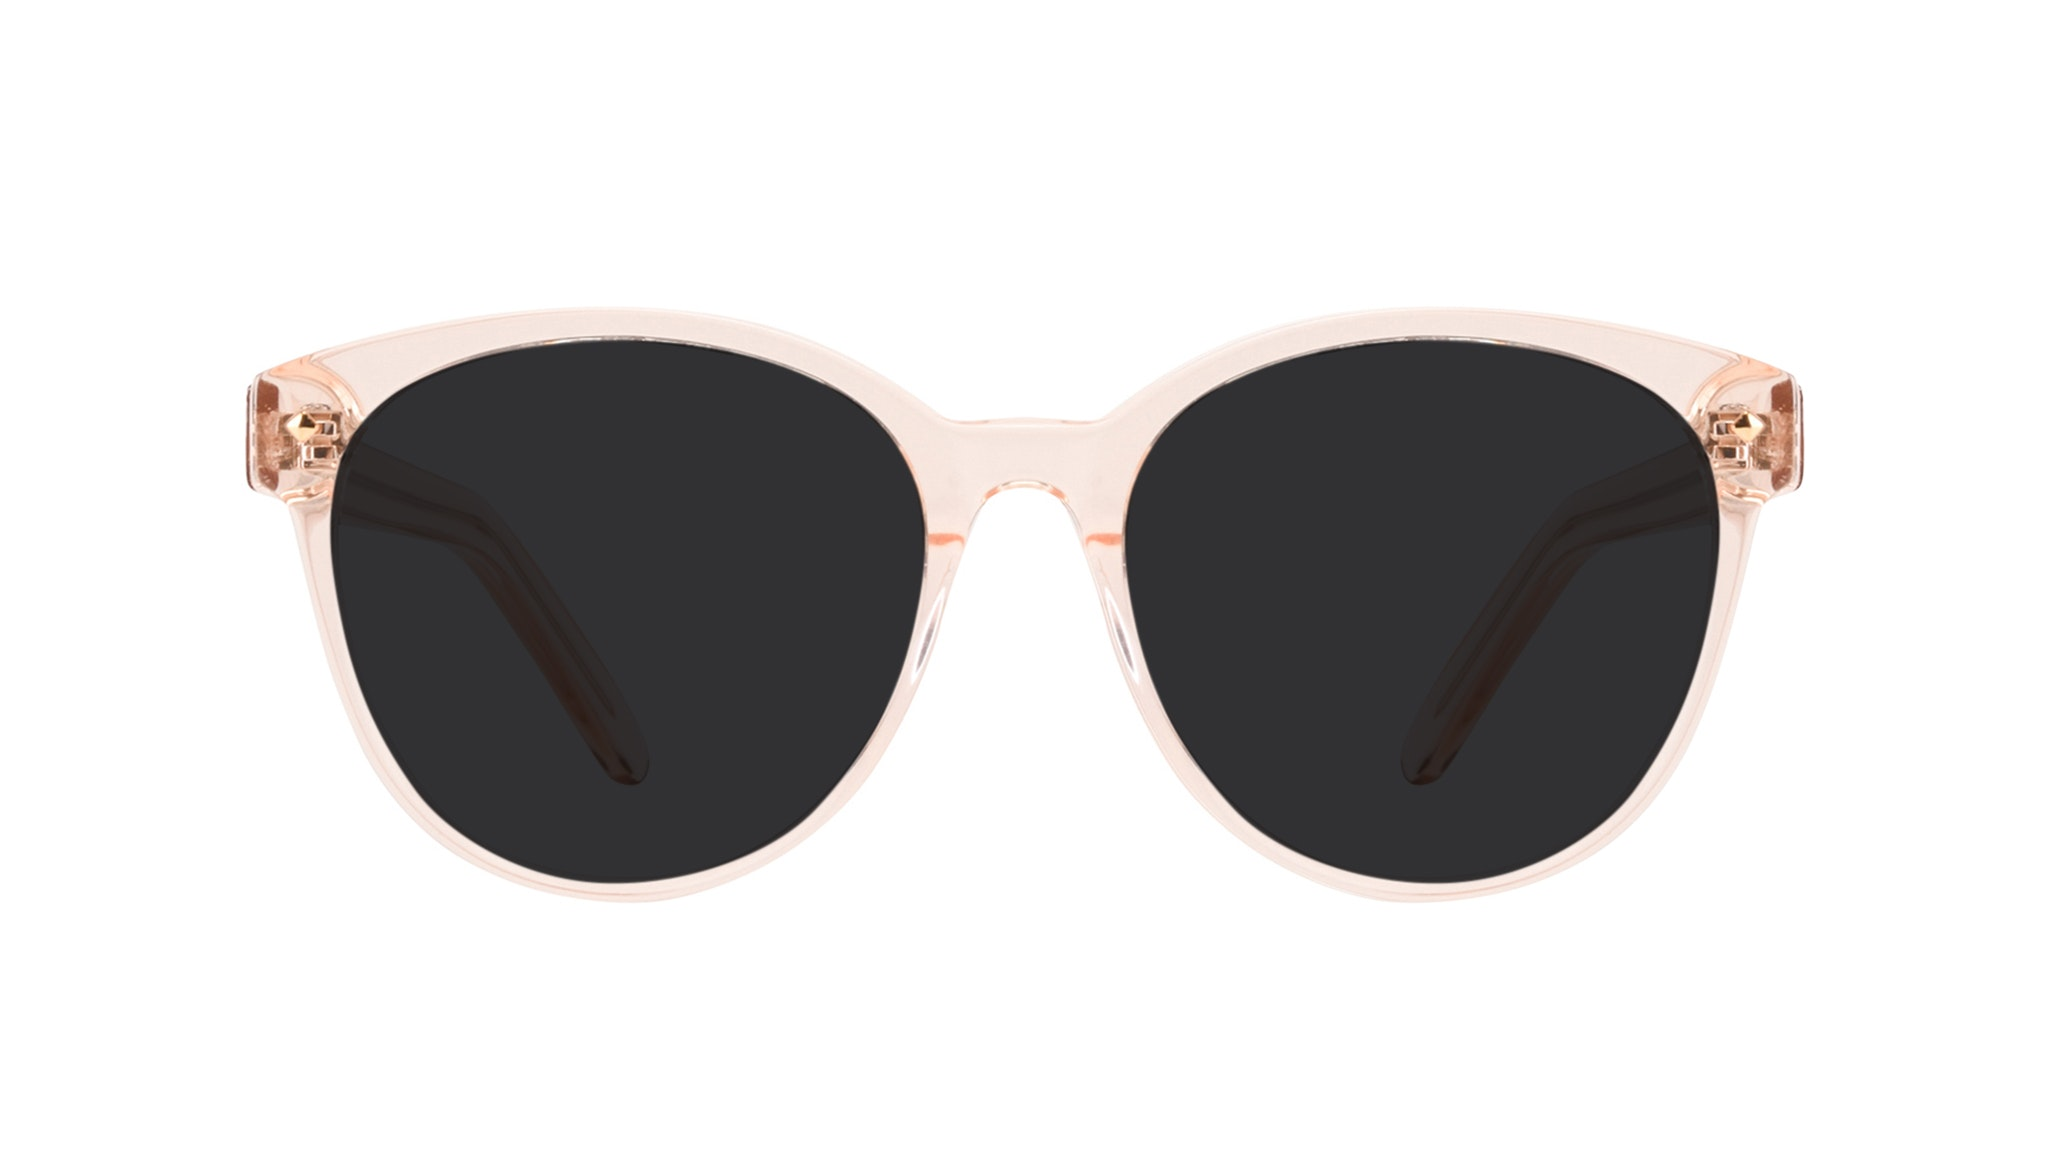 Affordable Fashion Glasses Round Sunglasses Women Eclipse Blond